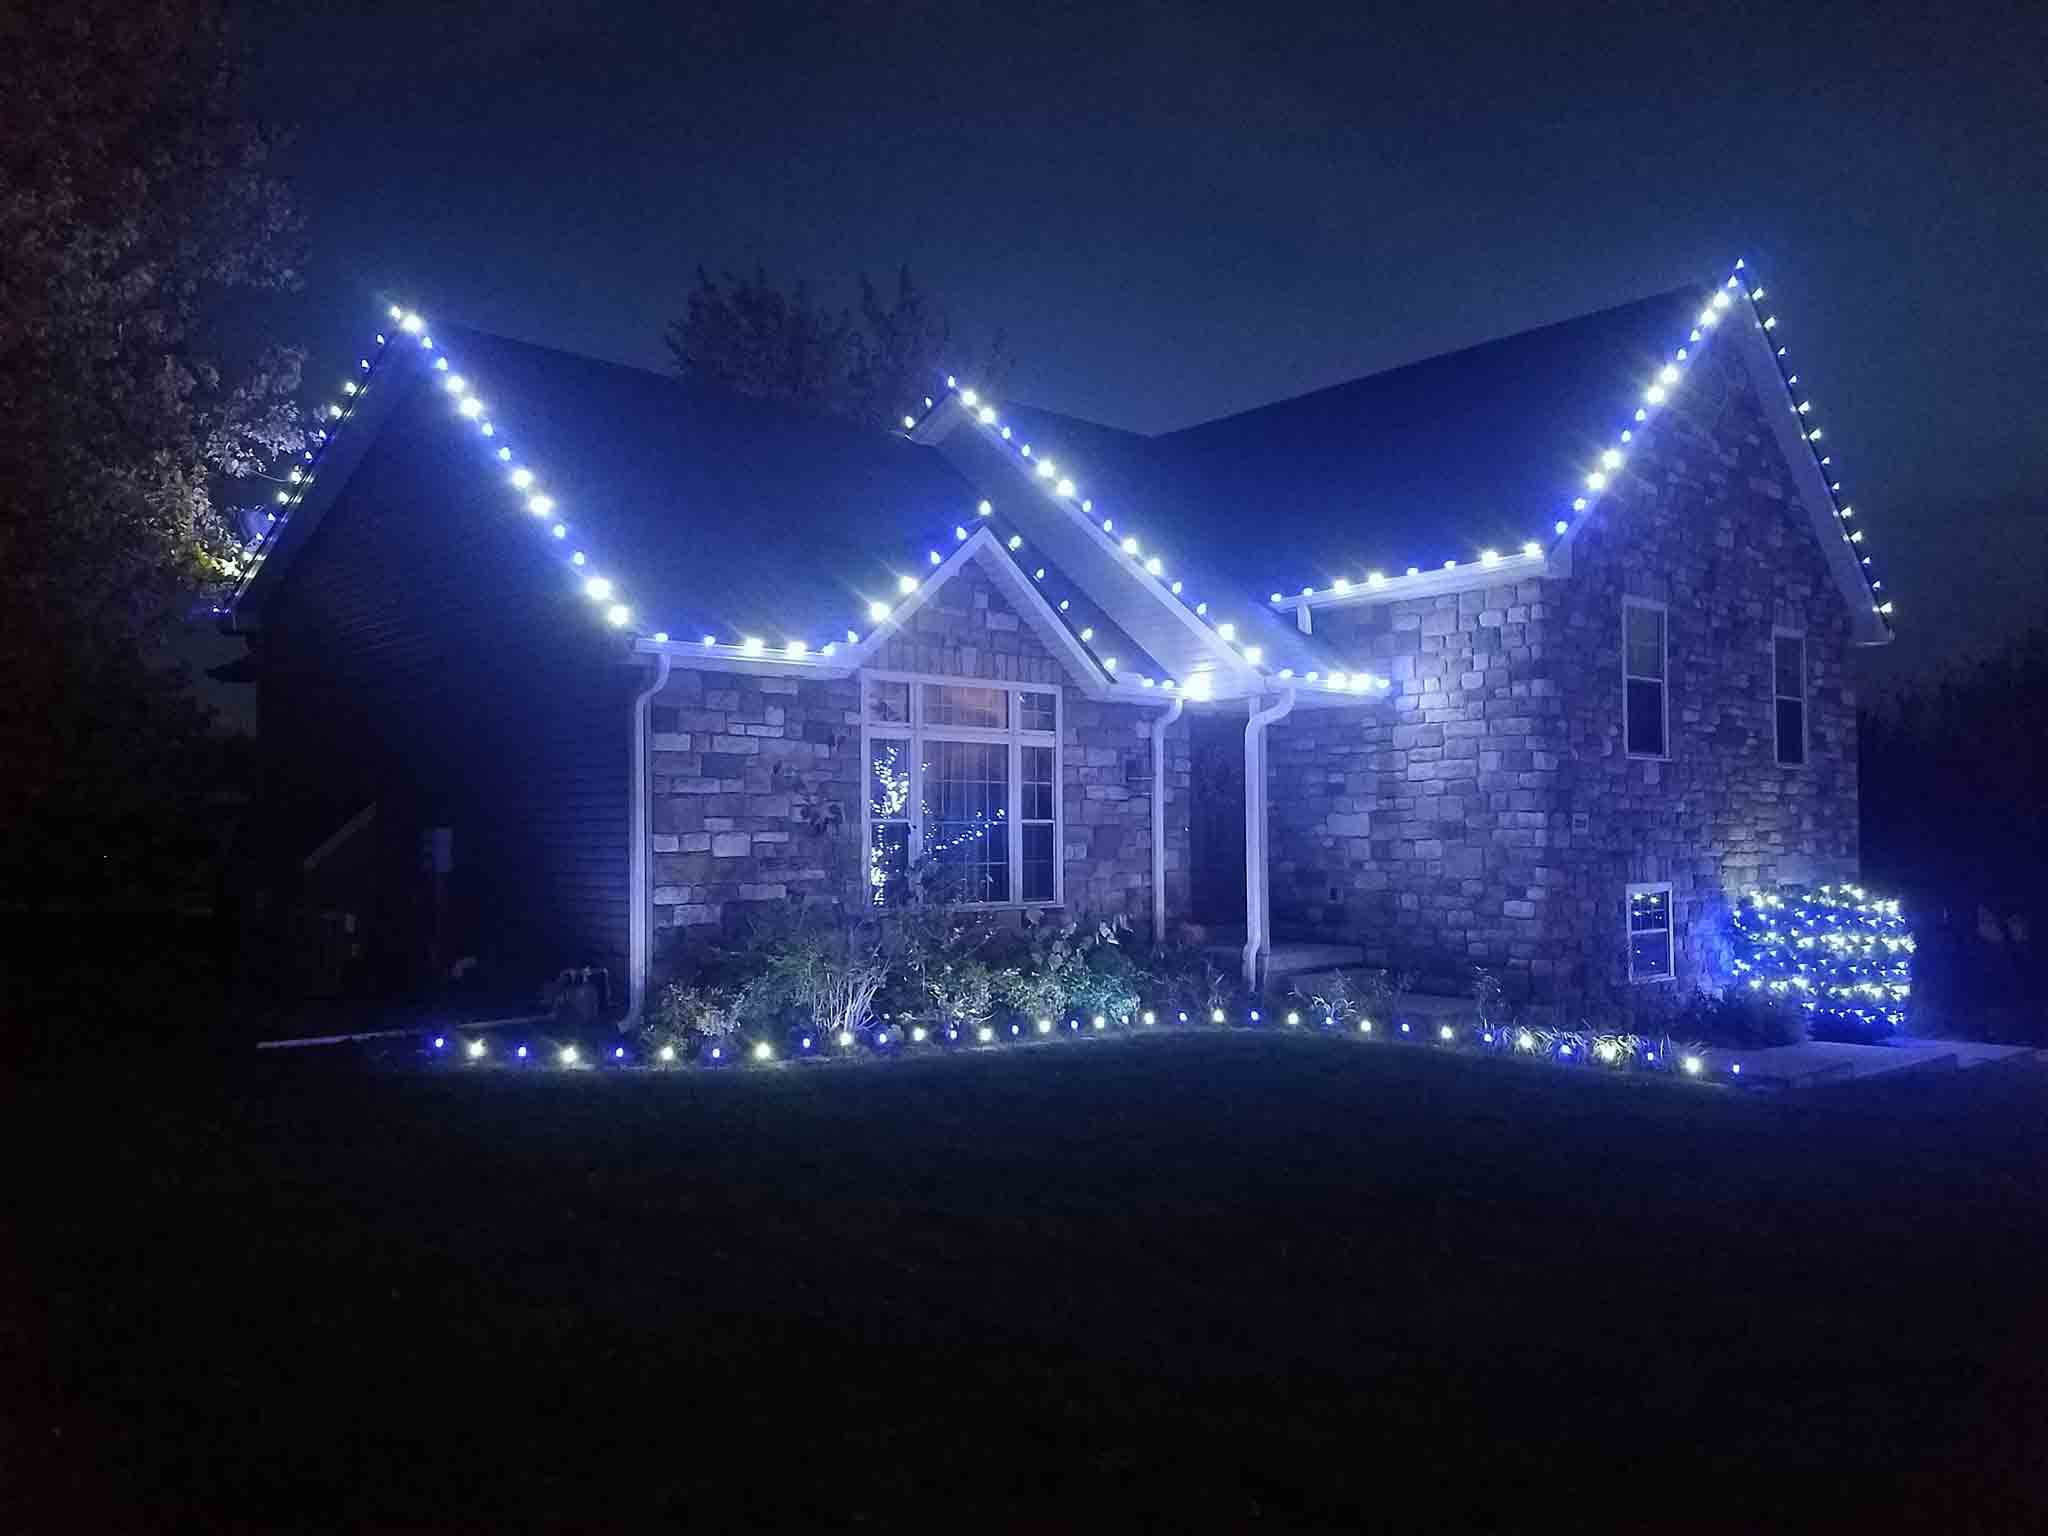 give yourself the gift of one less thing to worry about this holiday season by contacting we hang christmas lights today